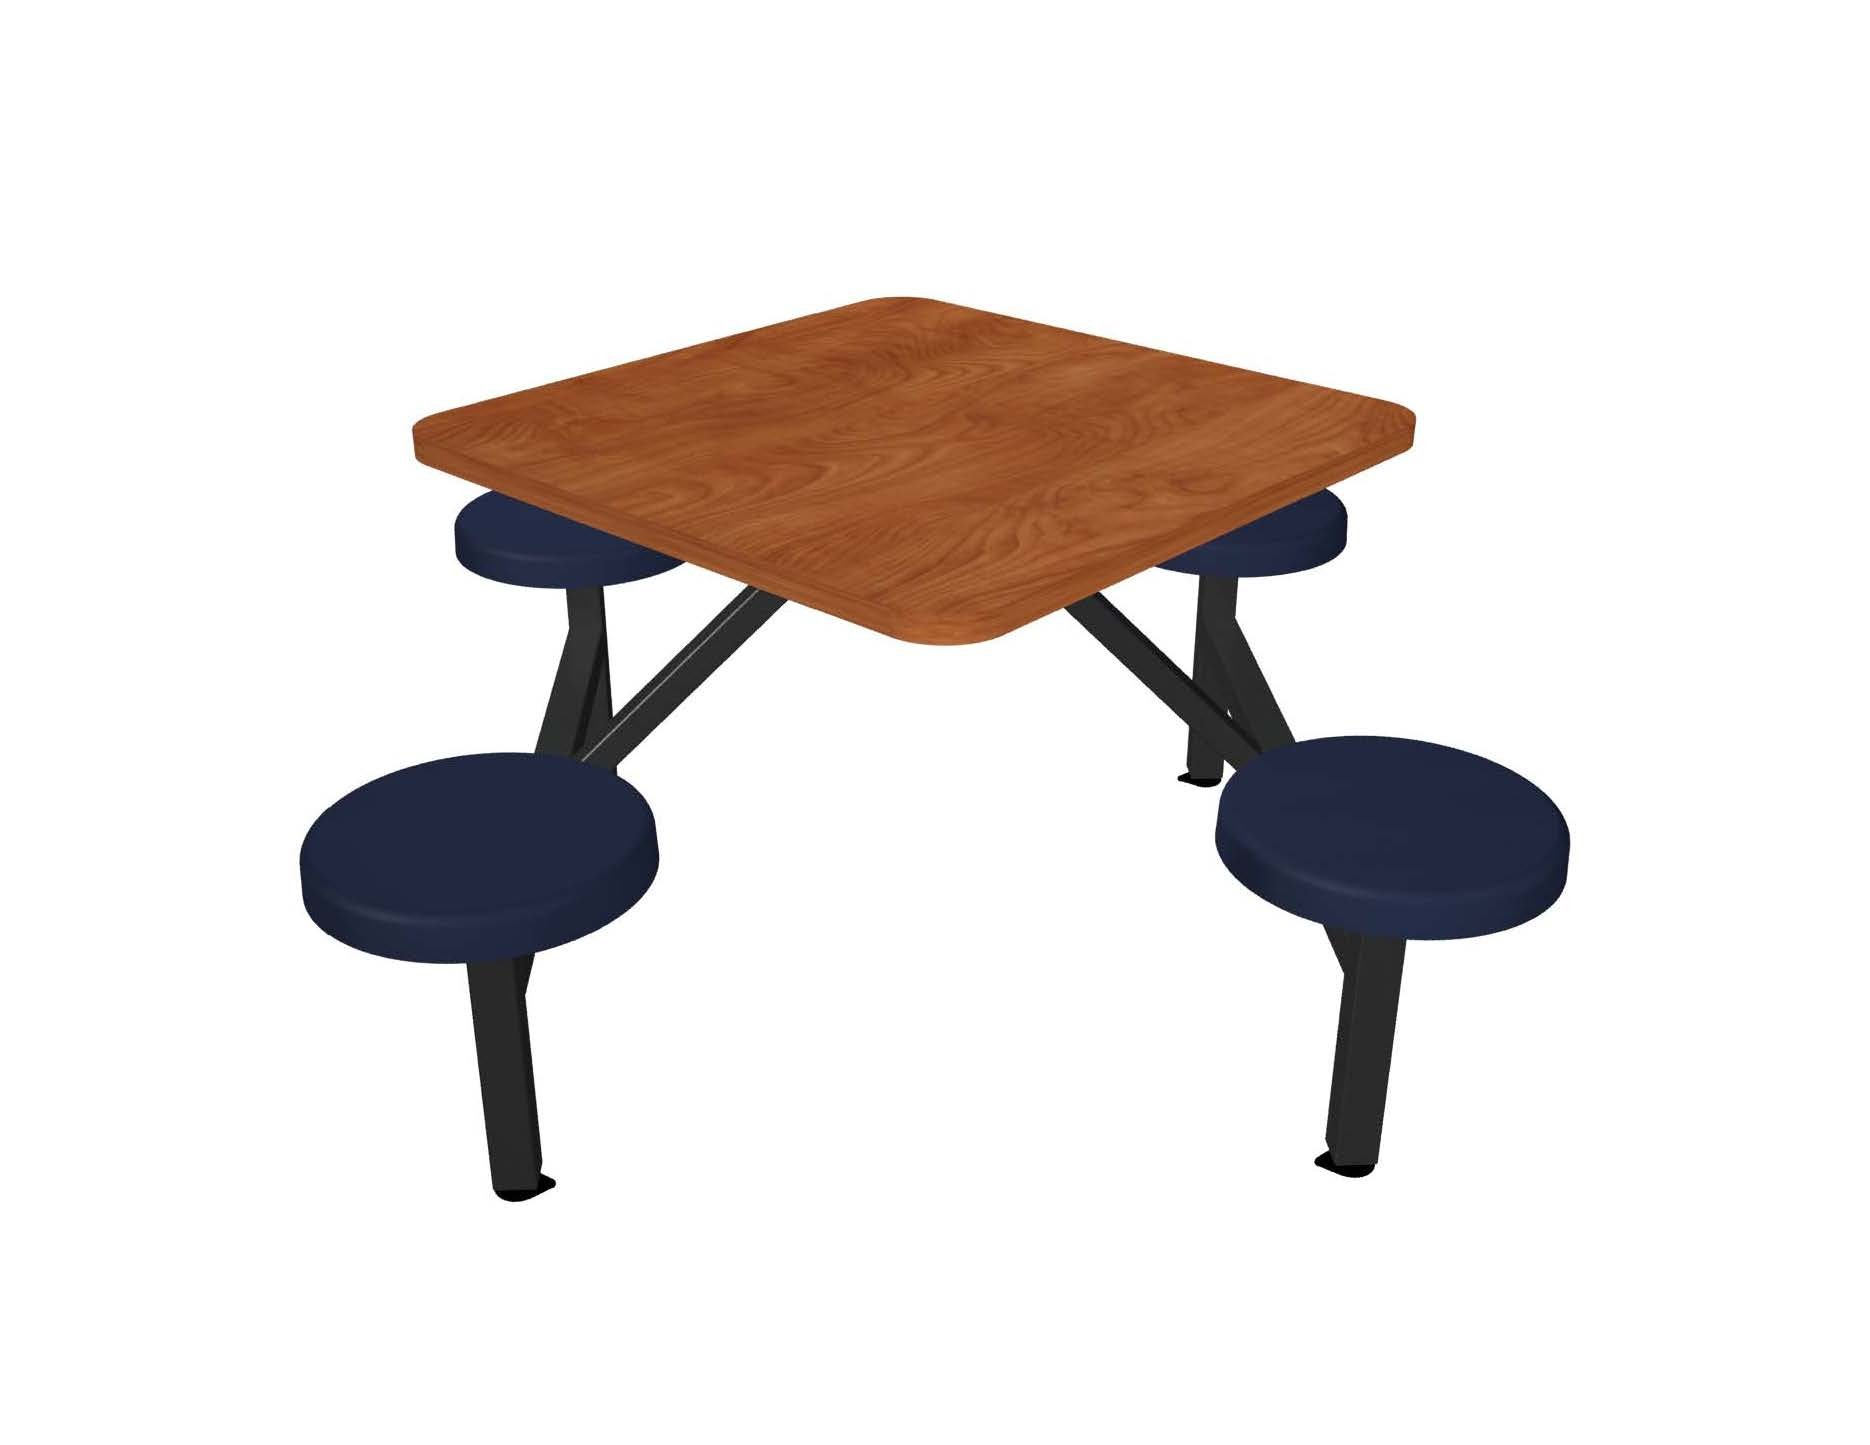 Wild Cherry laminate table top, Black vinyl edge, Navy composite button seat